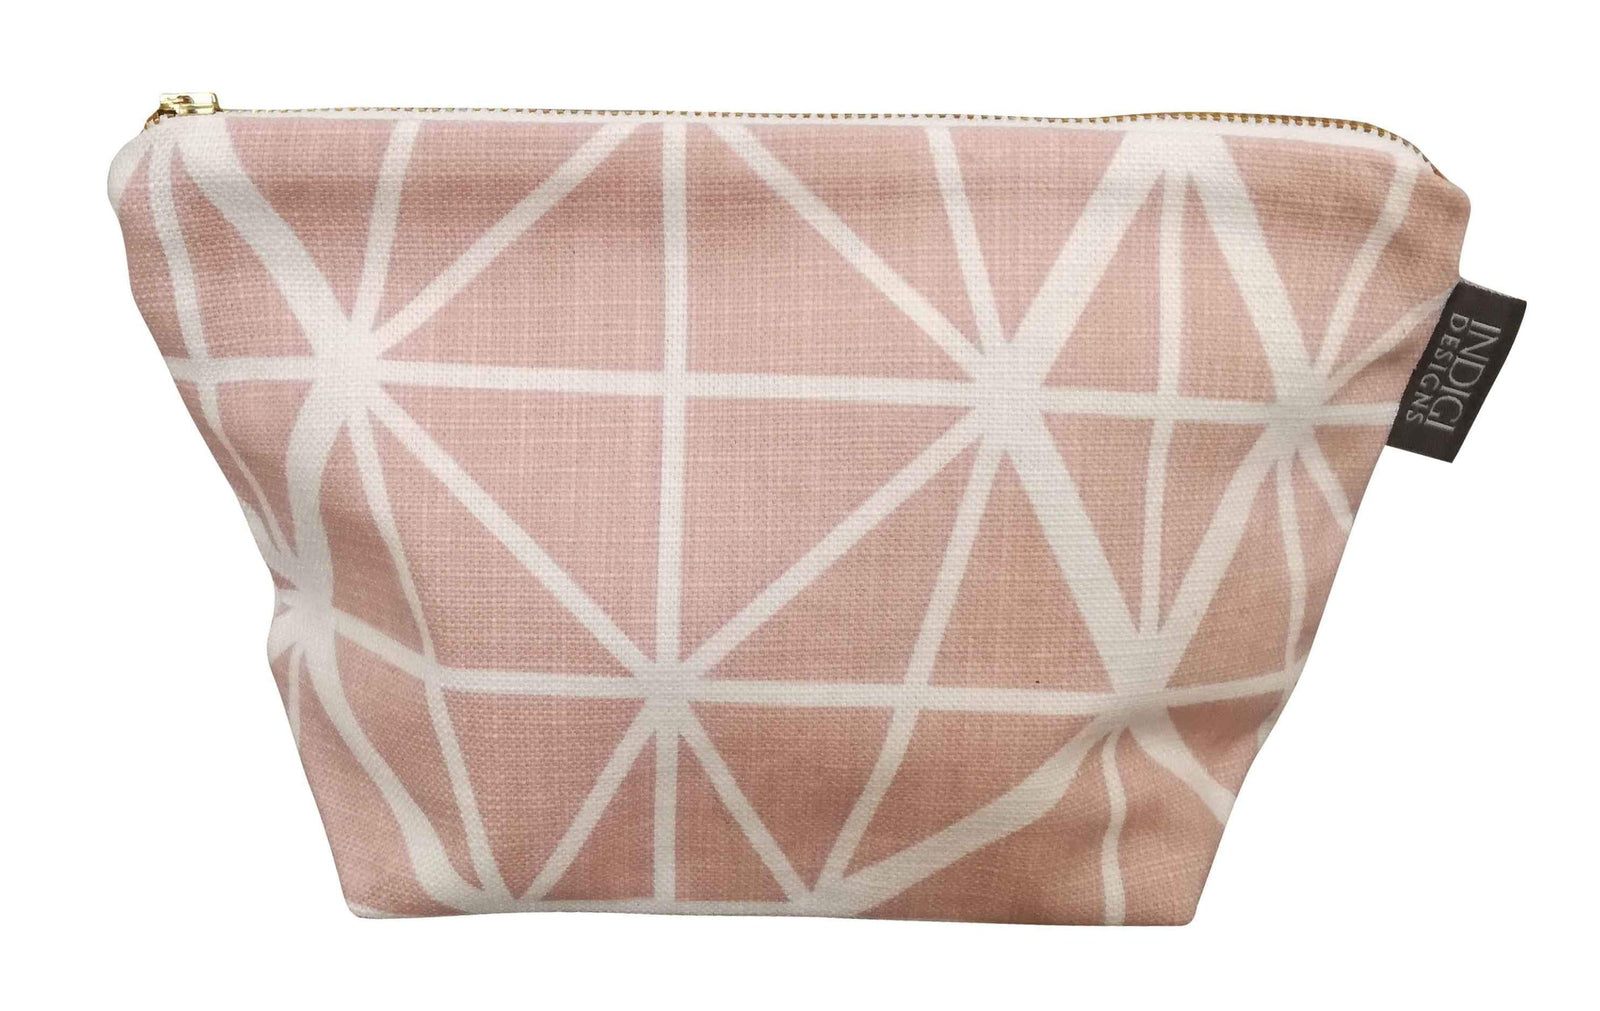 Facet Nude Pink Cosmetic Bag Large